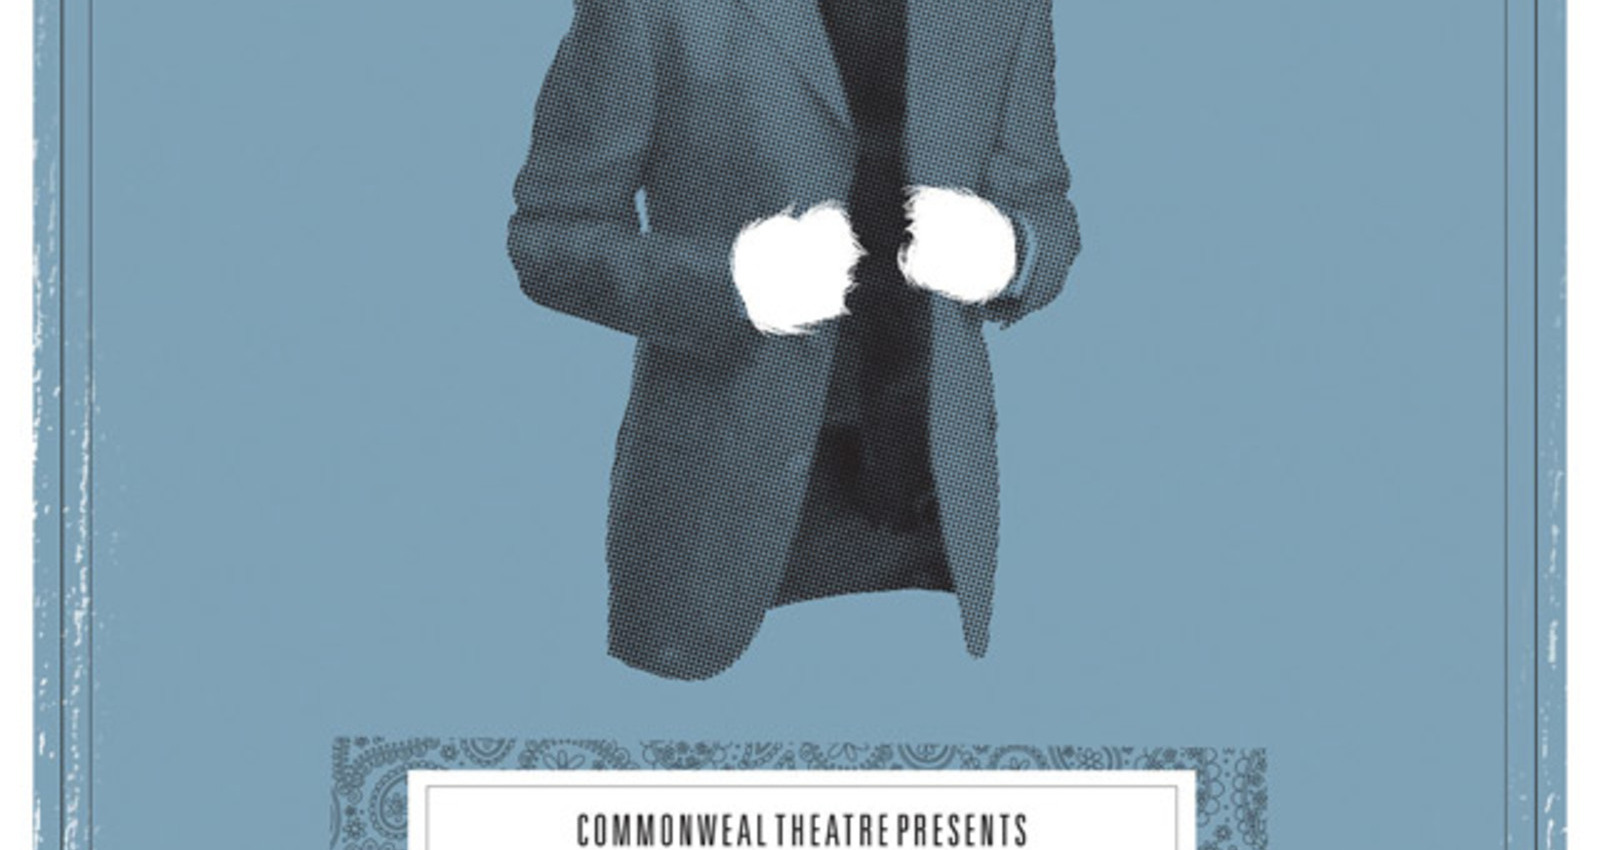 Commonweal Theatre 2008 Season Posters